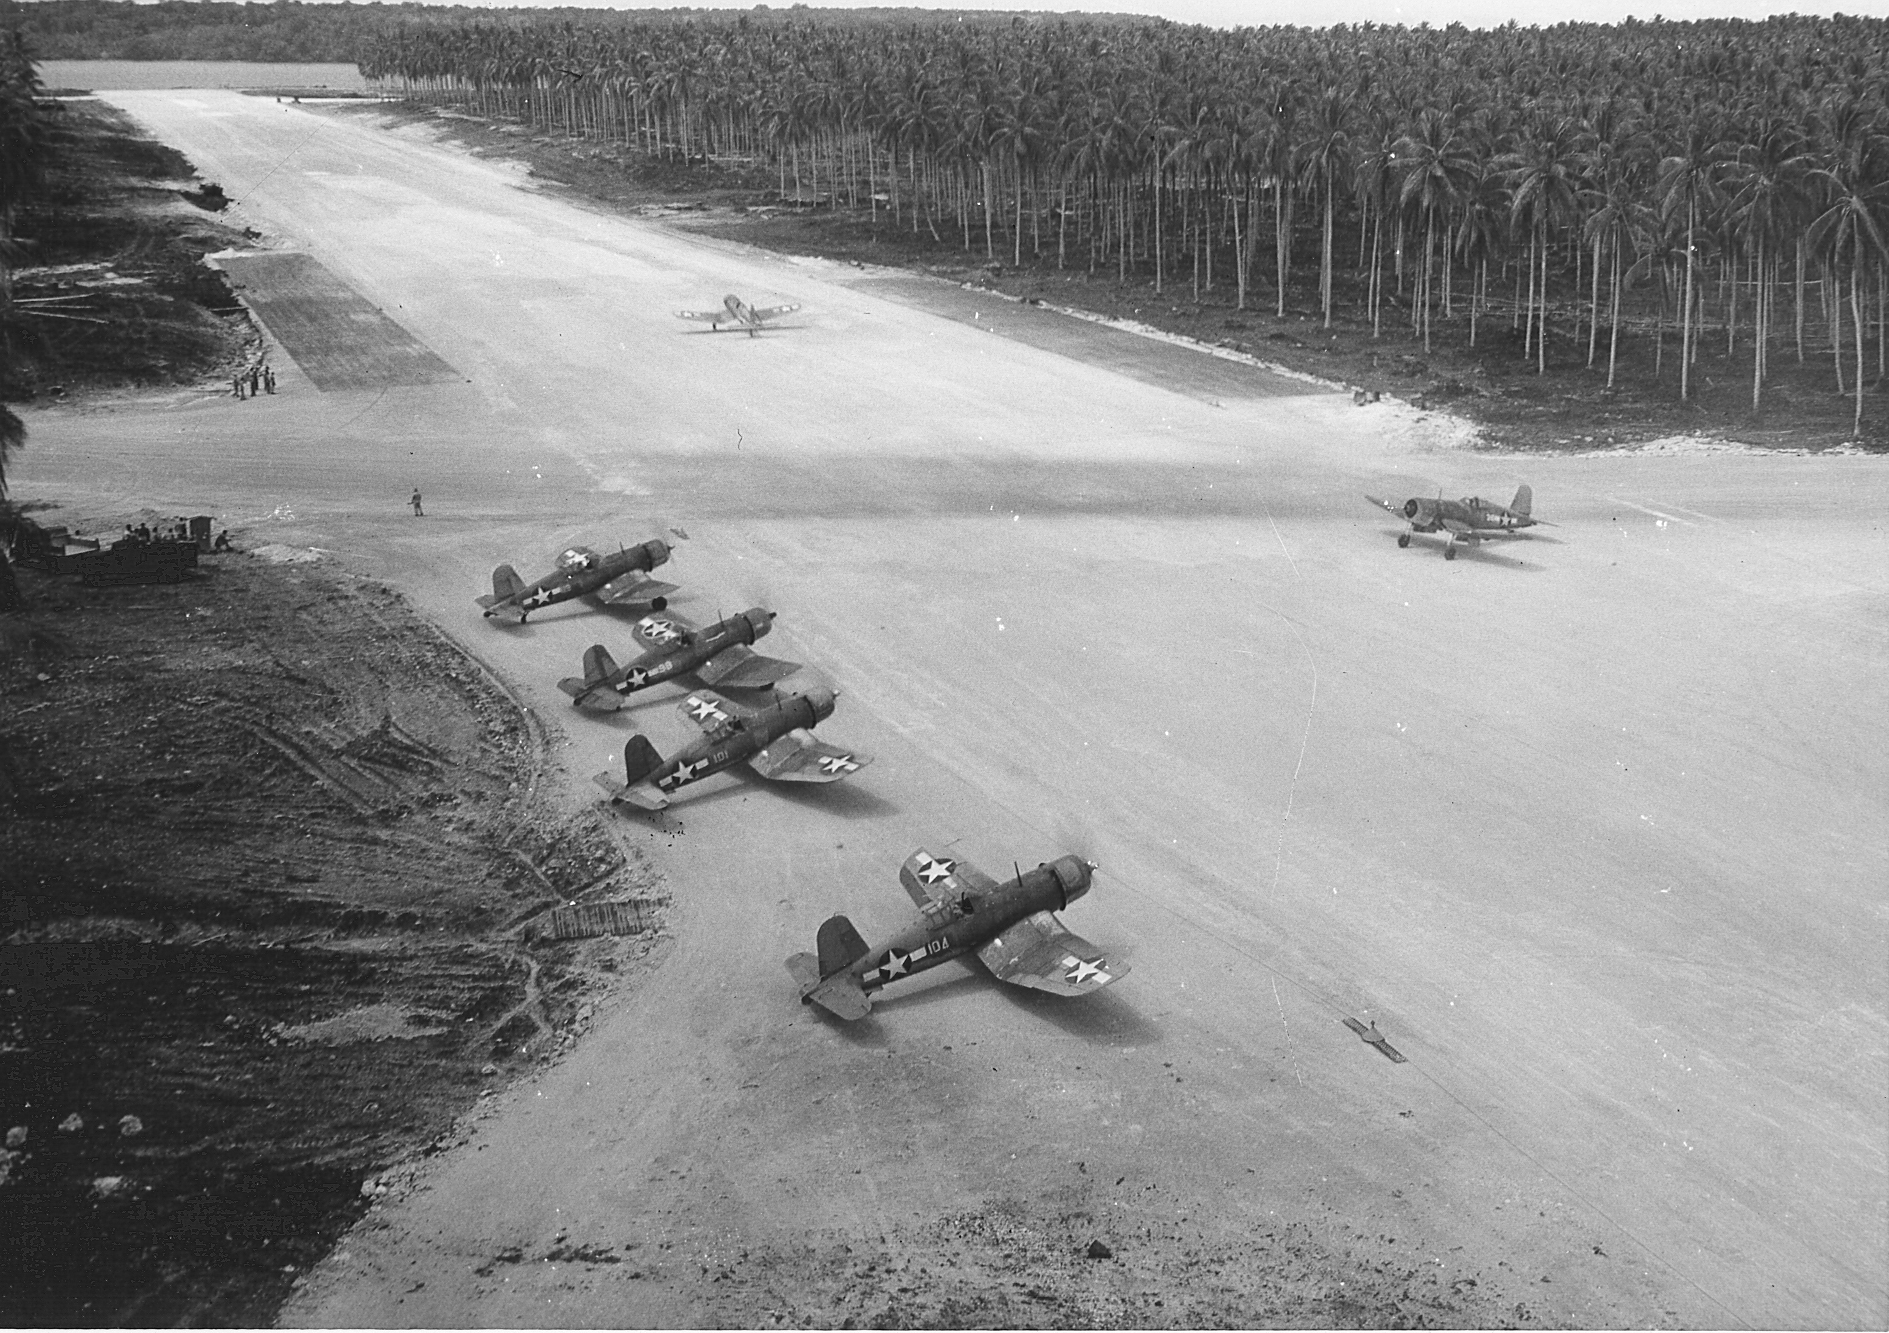 f4u_corsairs_of_vmf-123_on_the_russell_islands_1943.jpg